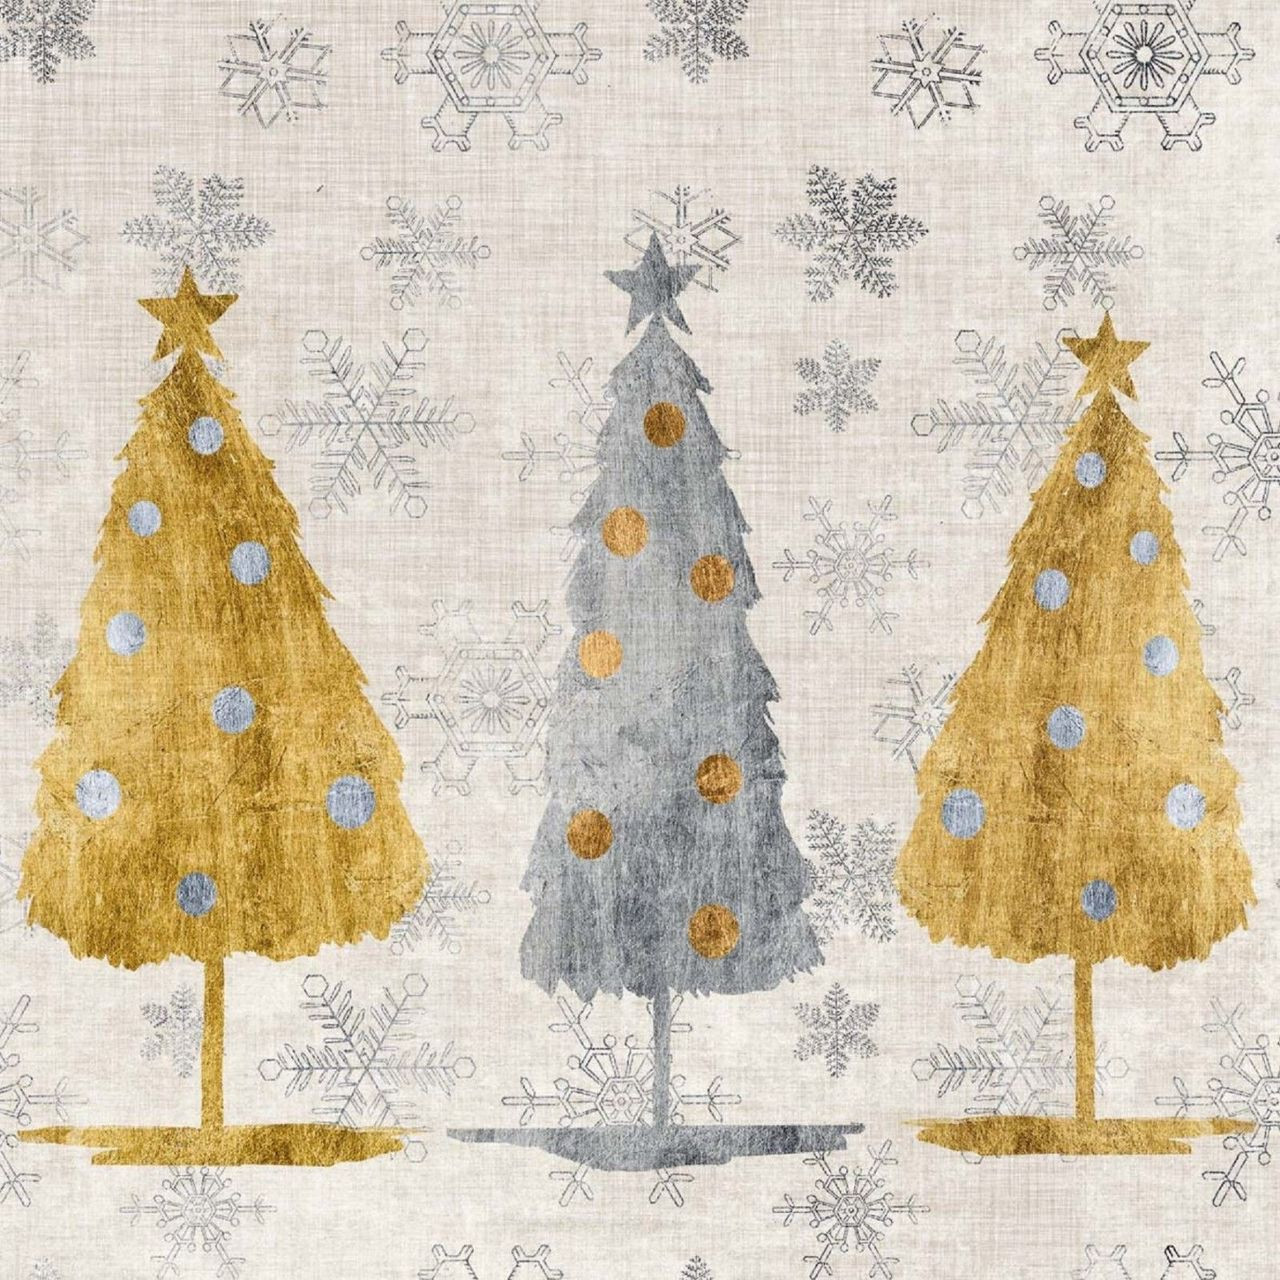 4 Lunch Paper Napkins for Decoupage Party Table Craft Vintage Christmas Ball